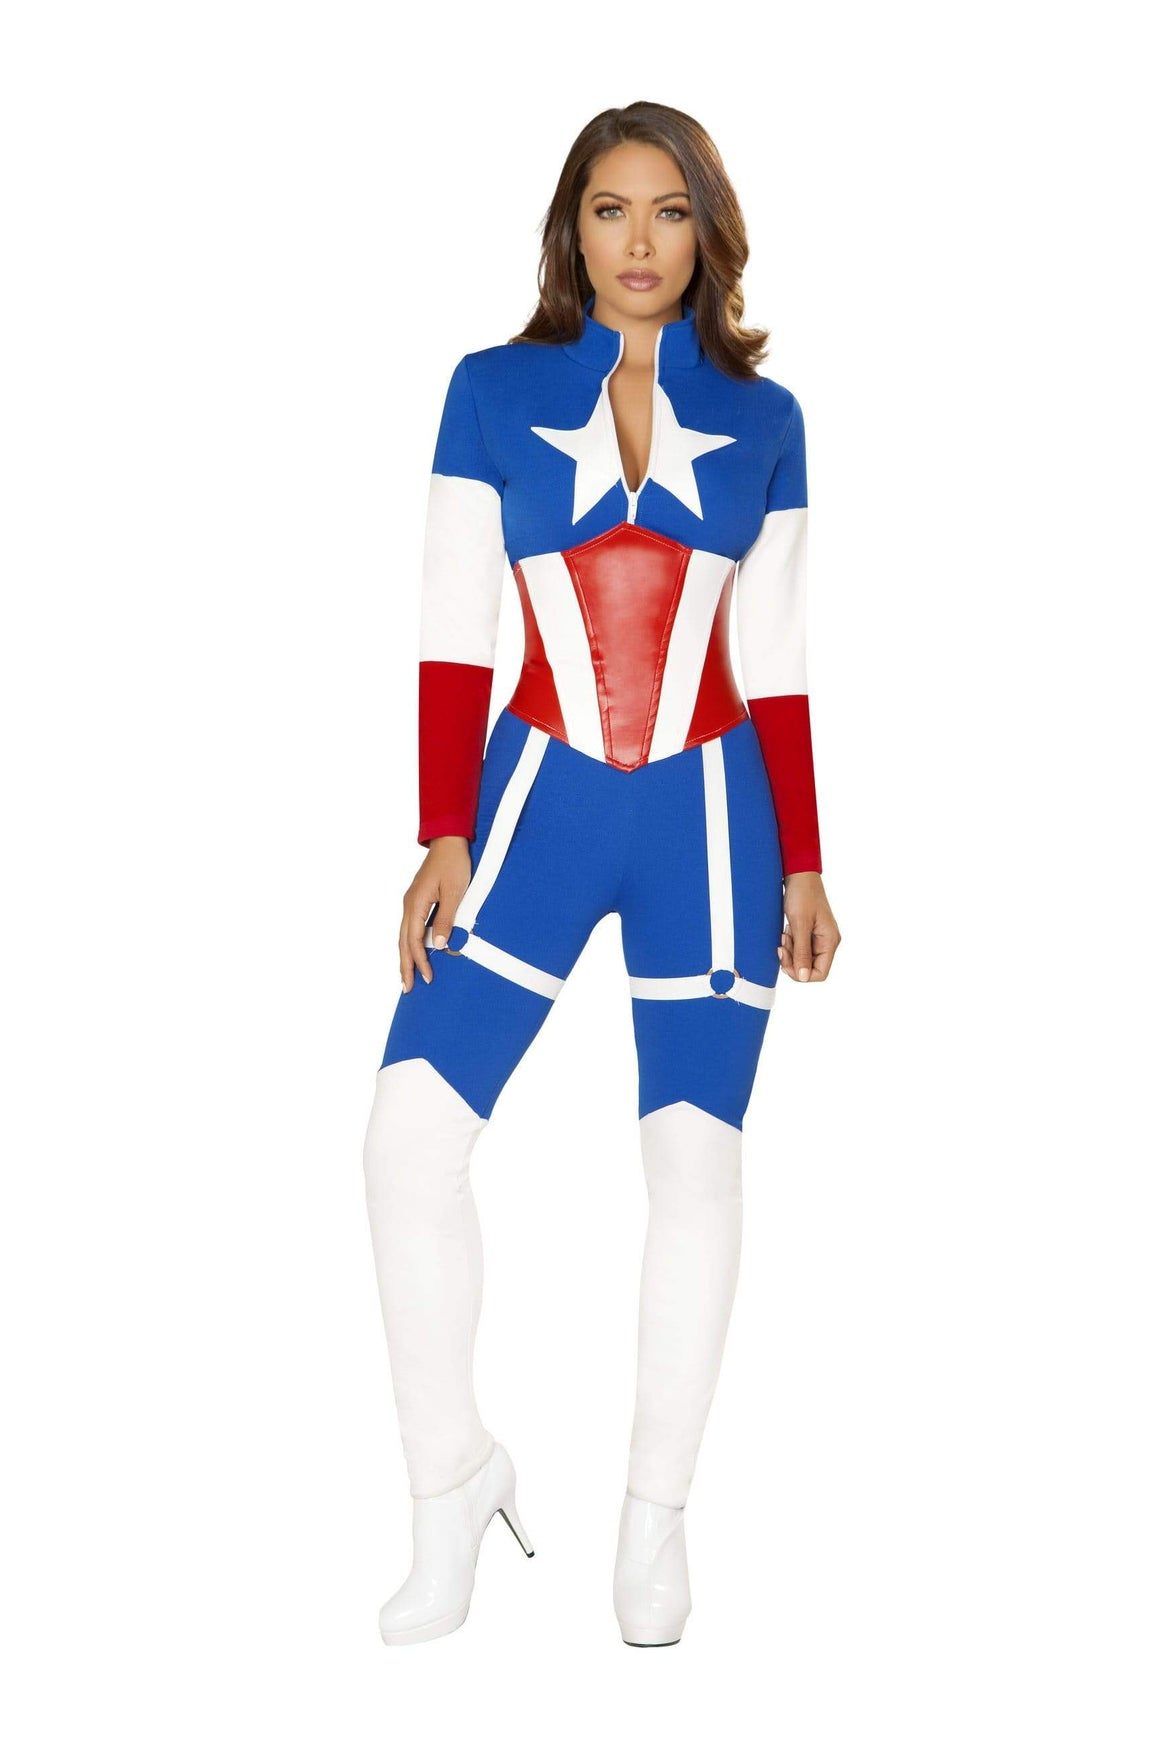 Roma Small / Multicolor American Commander Costume, 2 pc, Roma 4852 SHC-4852-S-R Apparel & Accessories > Costumes & Accessories > Costumes